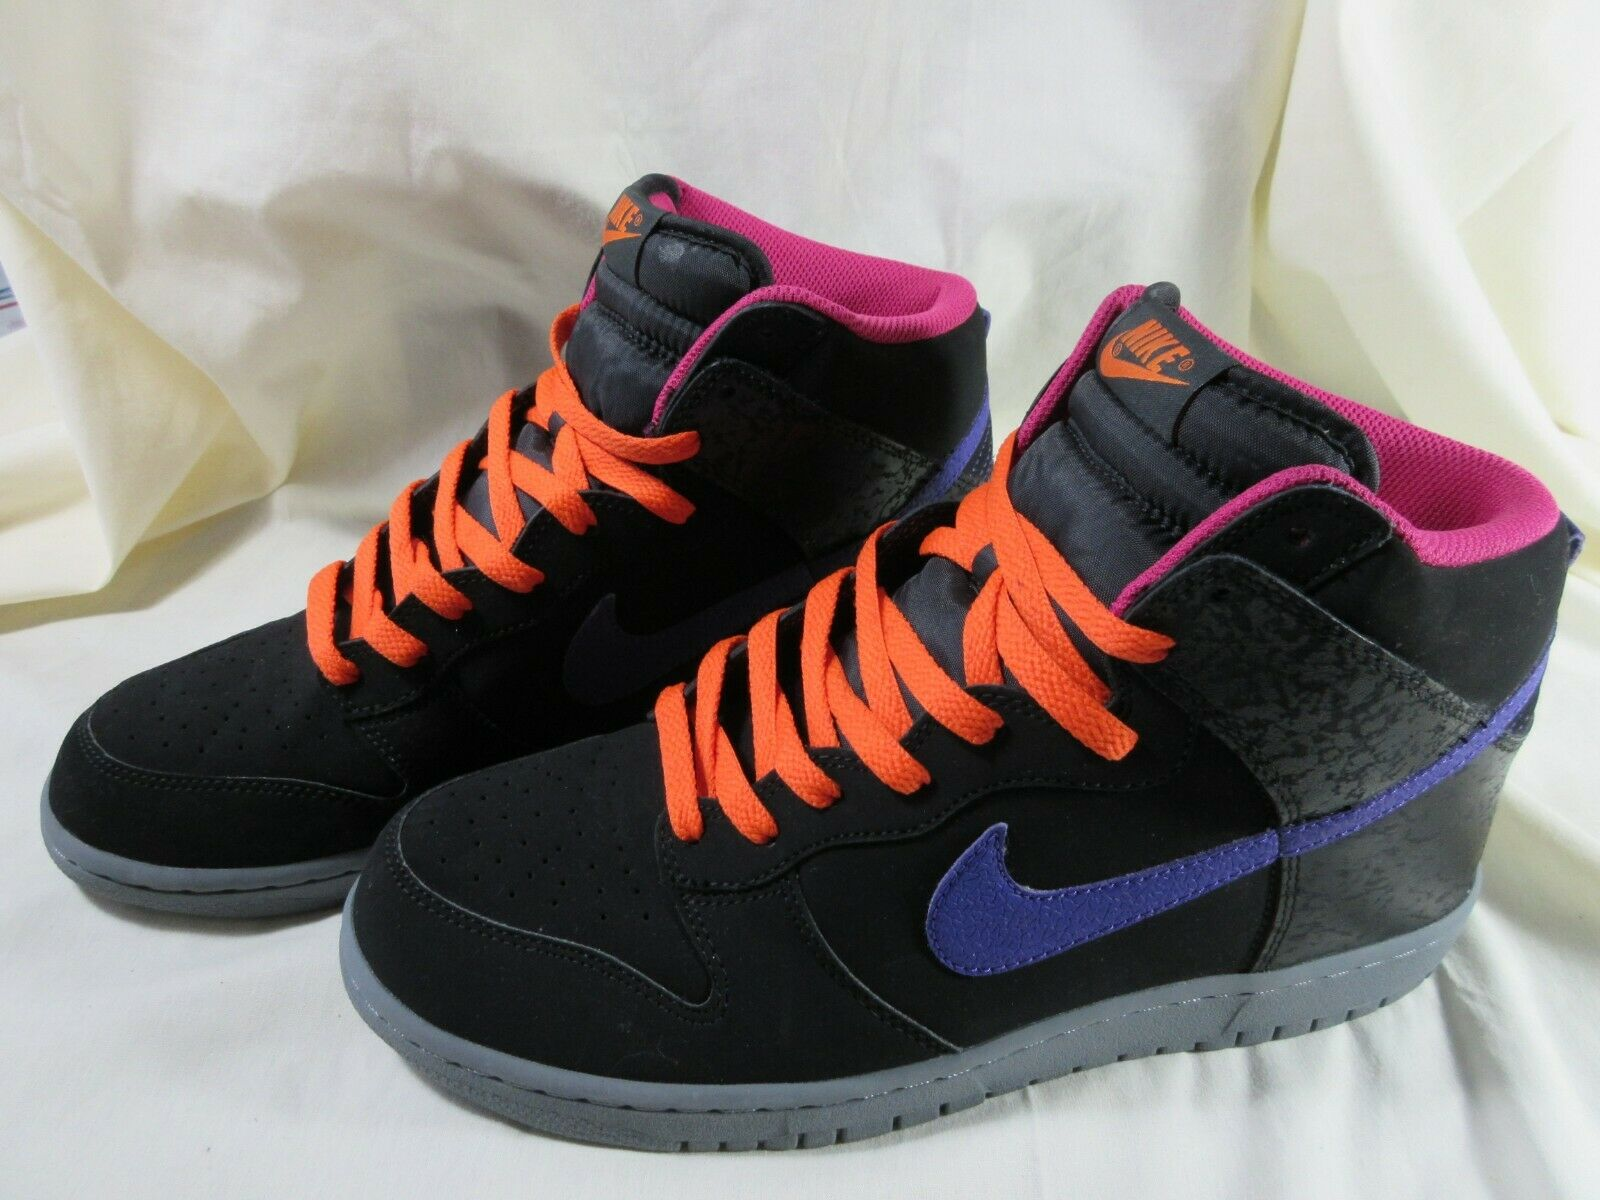 Nike Nike Nike Dunk High Black  Court Purple   Electric orange  317982 053 Men's 11 M e32478